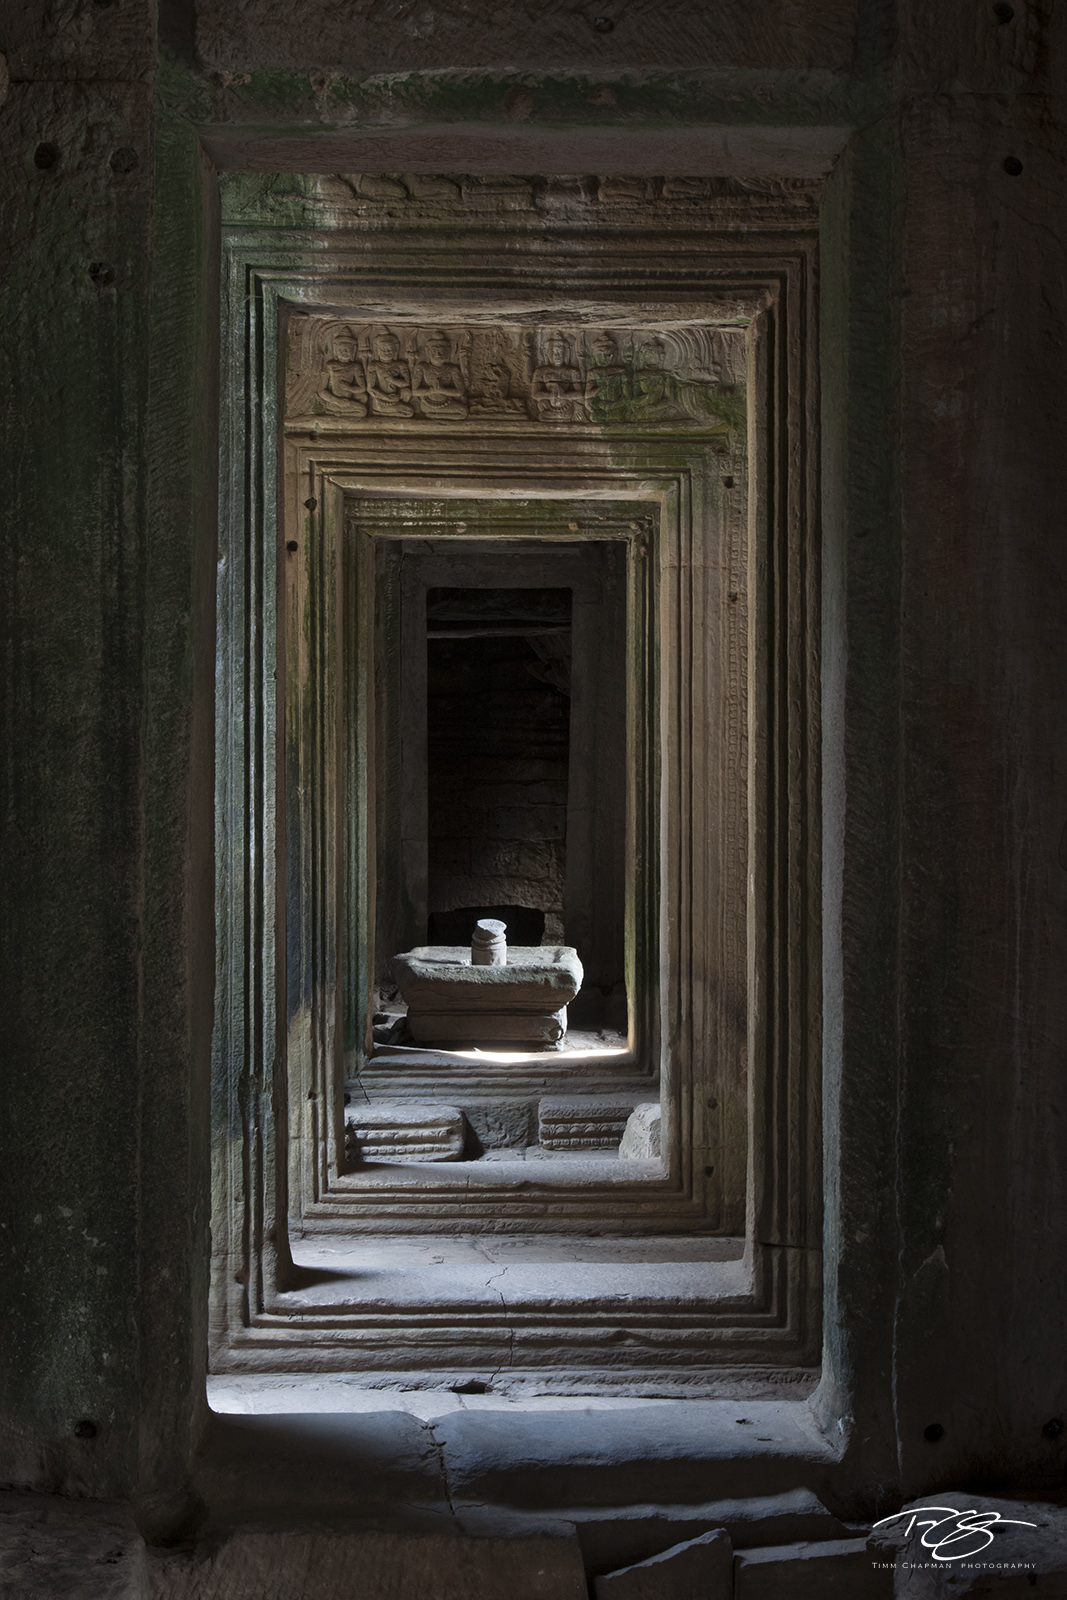 angkor wat, cambodia, temple, bayon, angkor thom, Linga, carving, stone, phallic, shiva, hinduism, buddhism, vishnu, doorways, chambers, light, shadow, sculpture, ancient, library, doorway, door, aban, photo